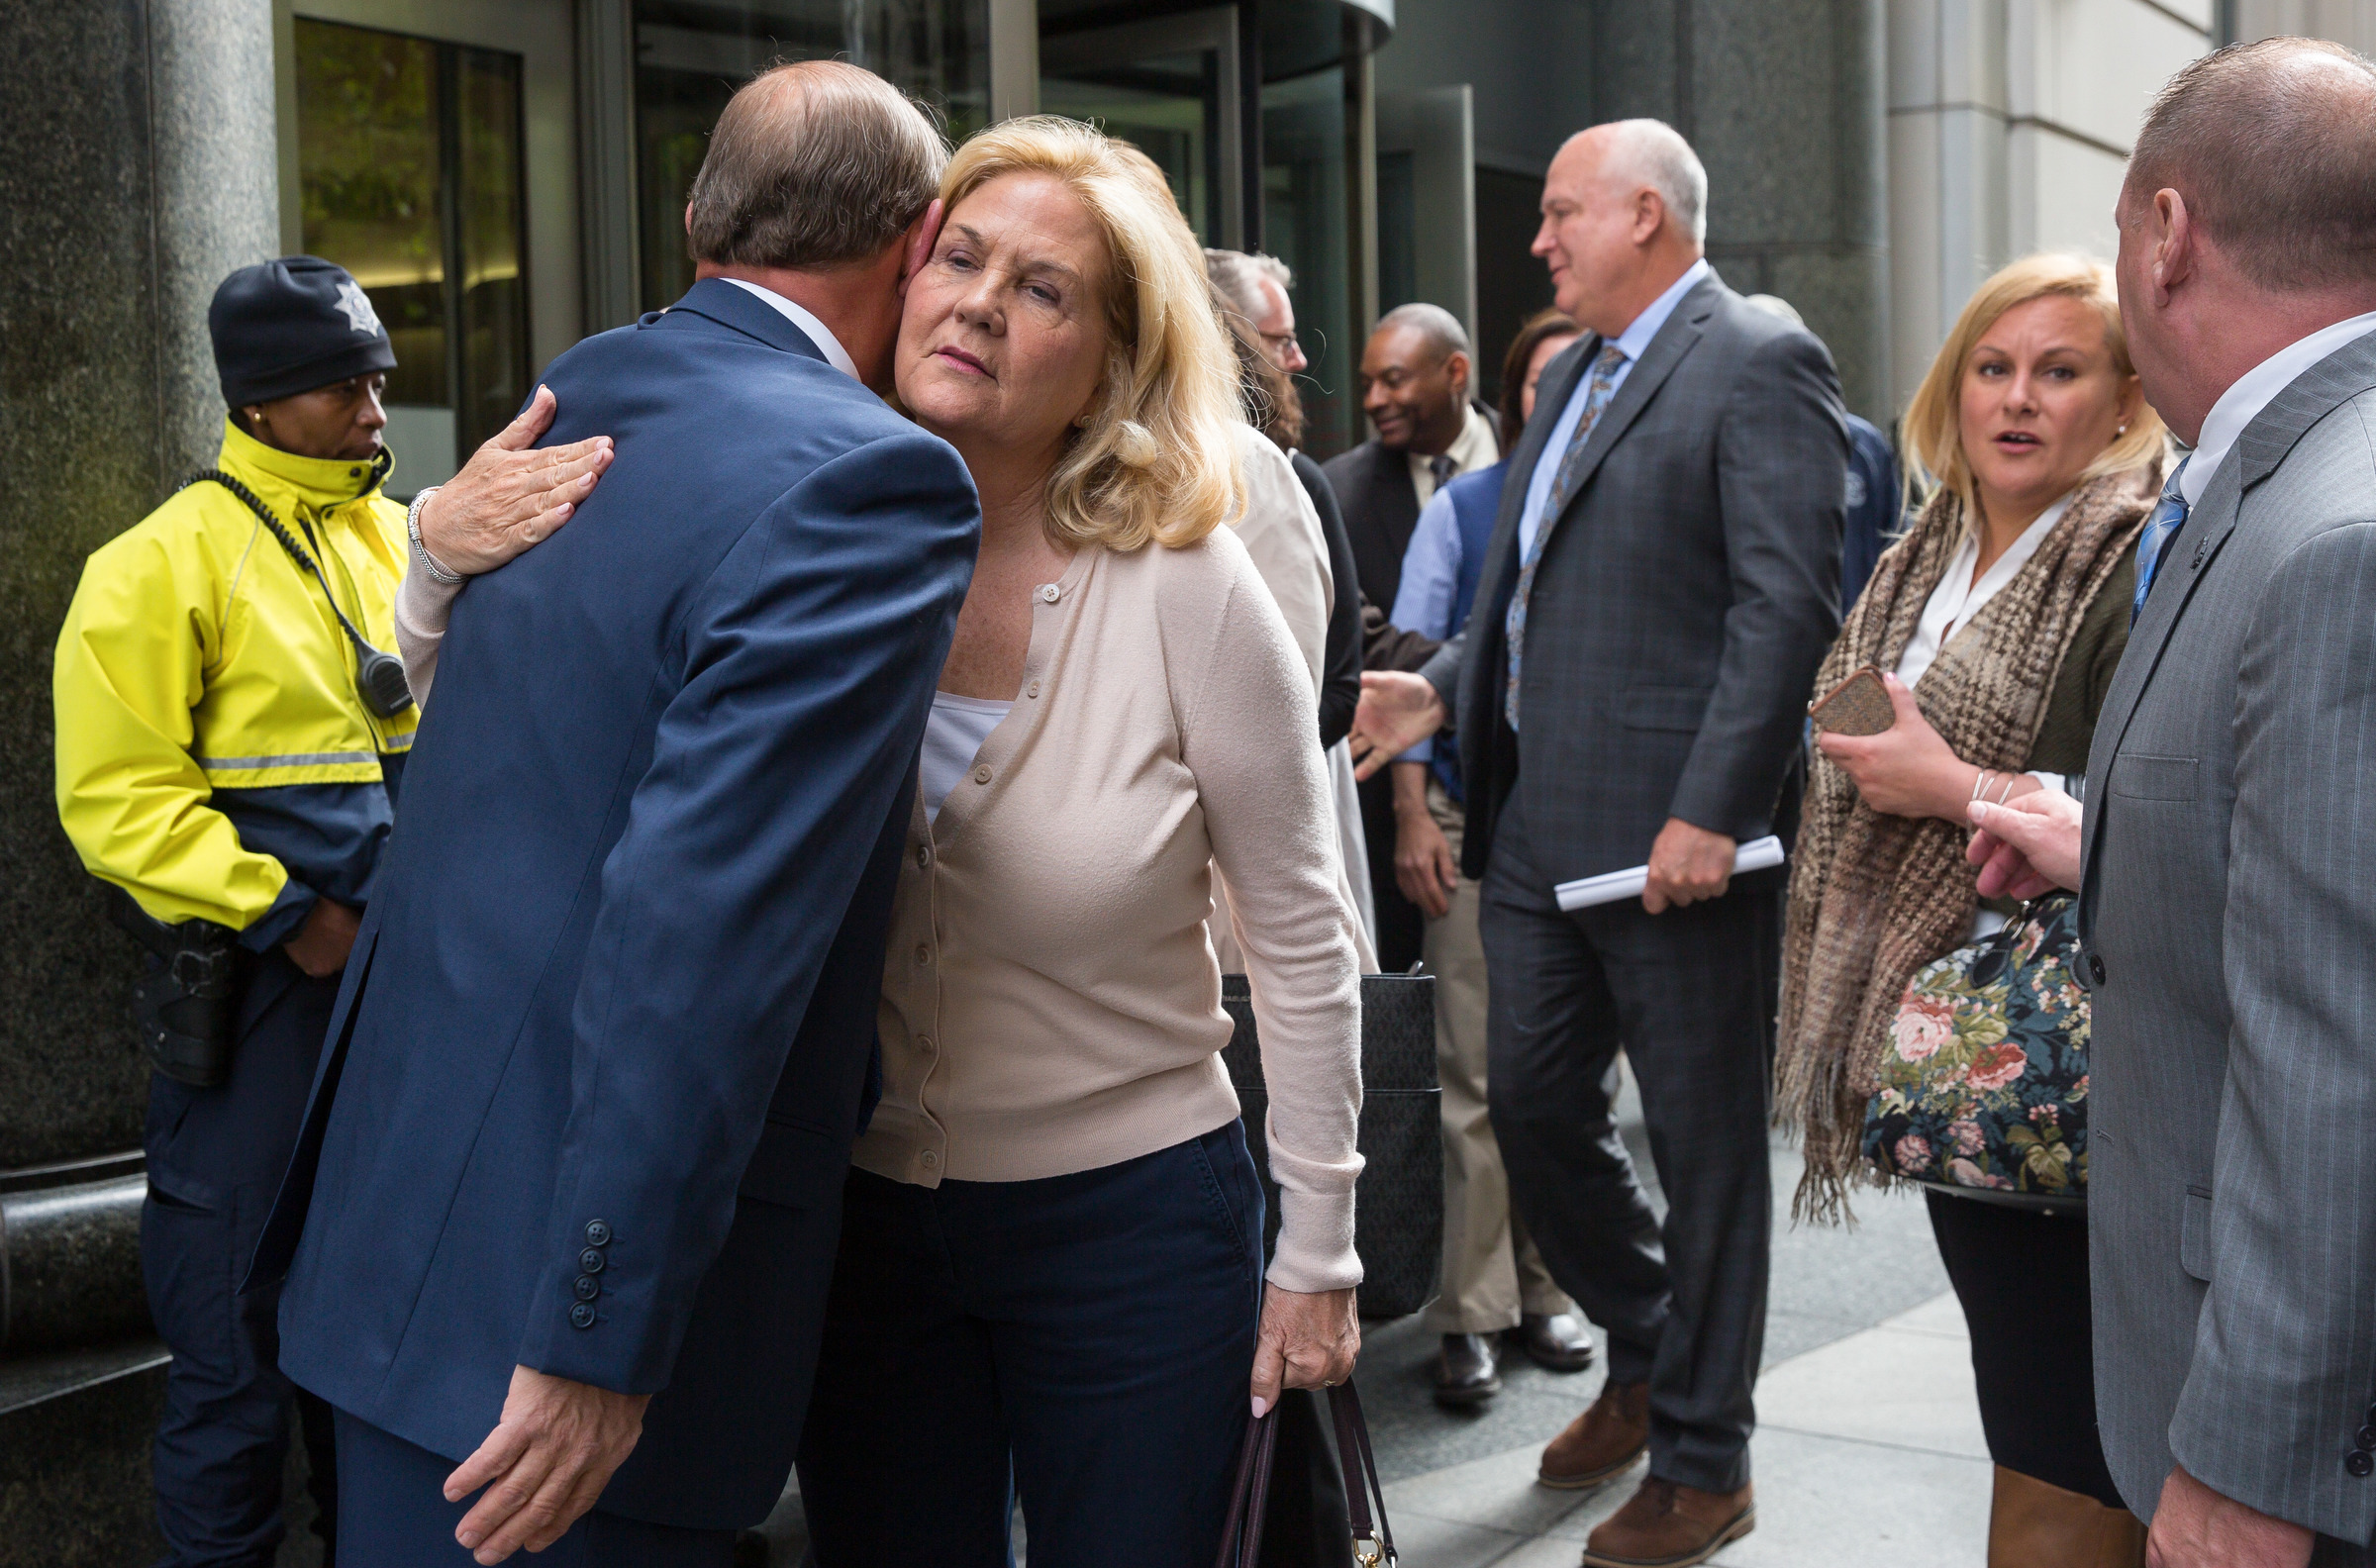 Maureen Faulkner, widow of of slain Police Officer Daniel Faulkner, receives a hug from a well-wisher outside of the Criminal Justice Center after attending a hearing about a constitutional challenge in the case of convicted cop-killer Mumia Abu-Jamal on Monday, April 30, 2018.